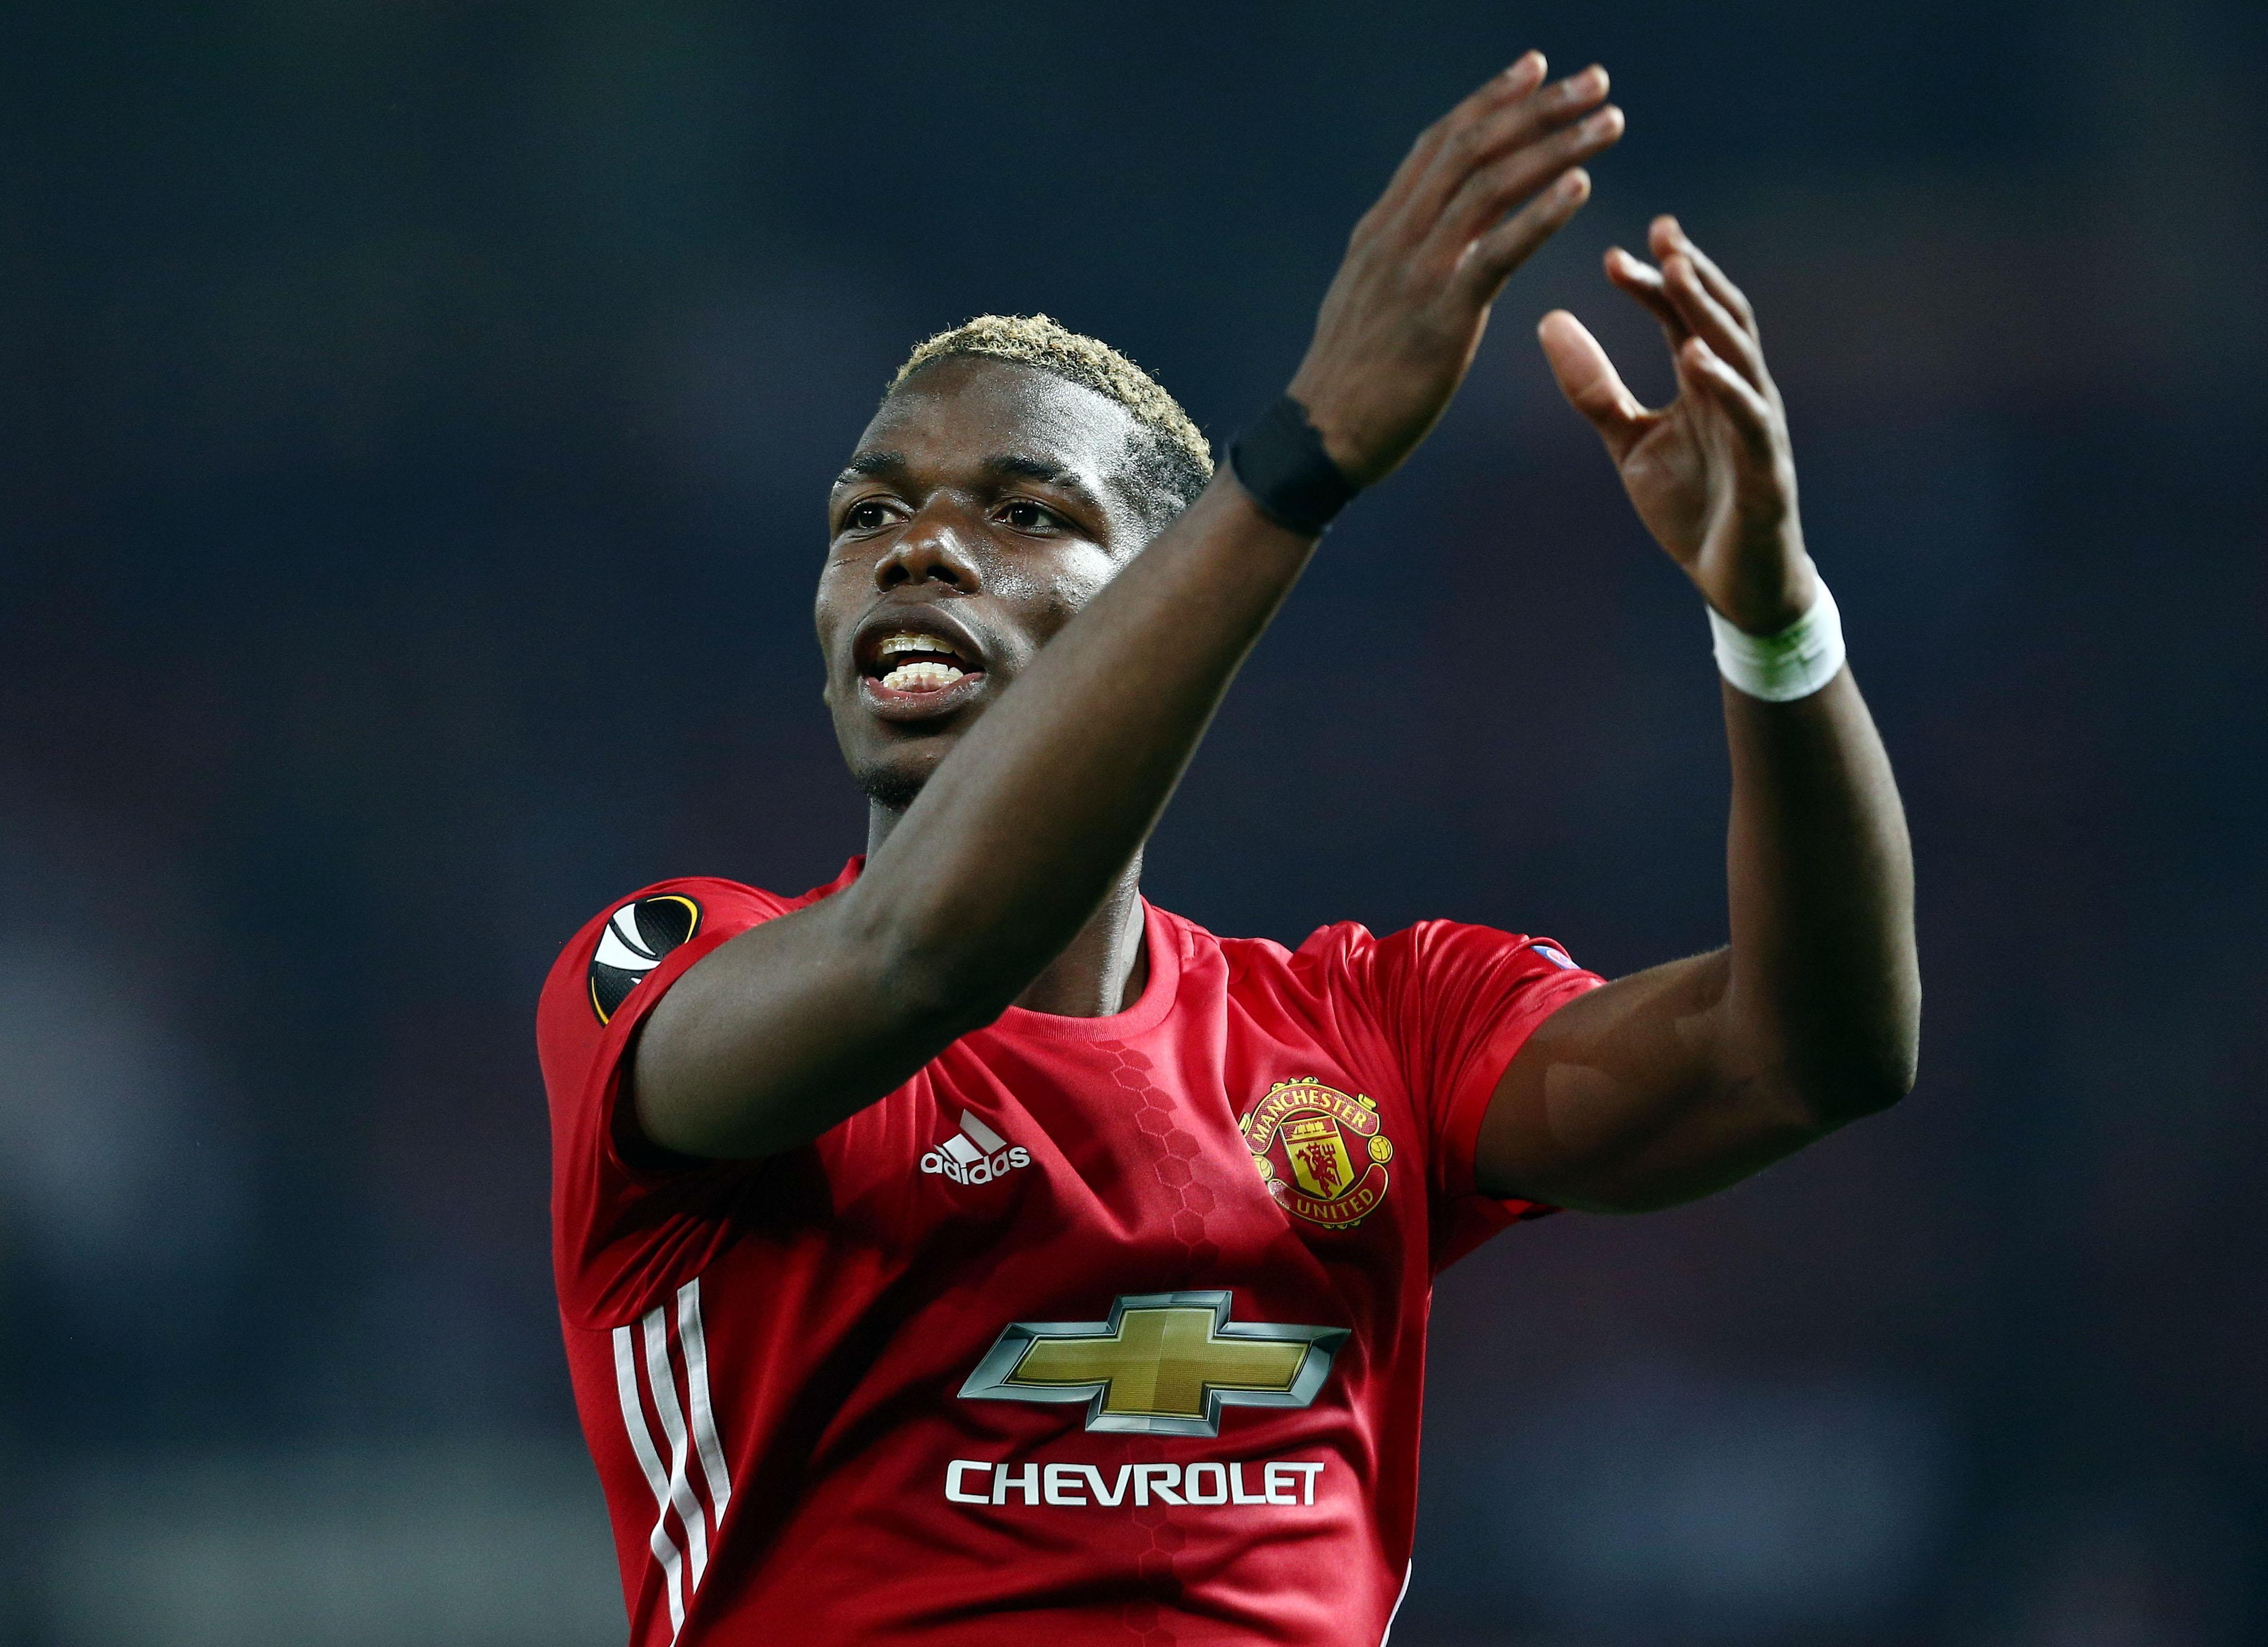 Paul Pogba's statistics are proving the haters wrong